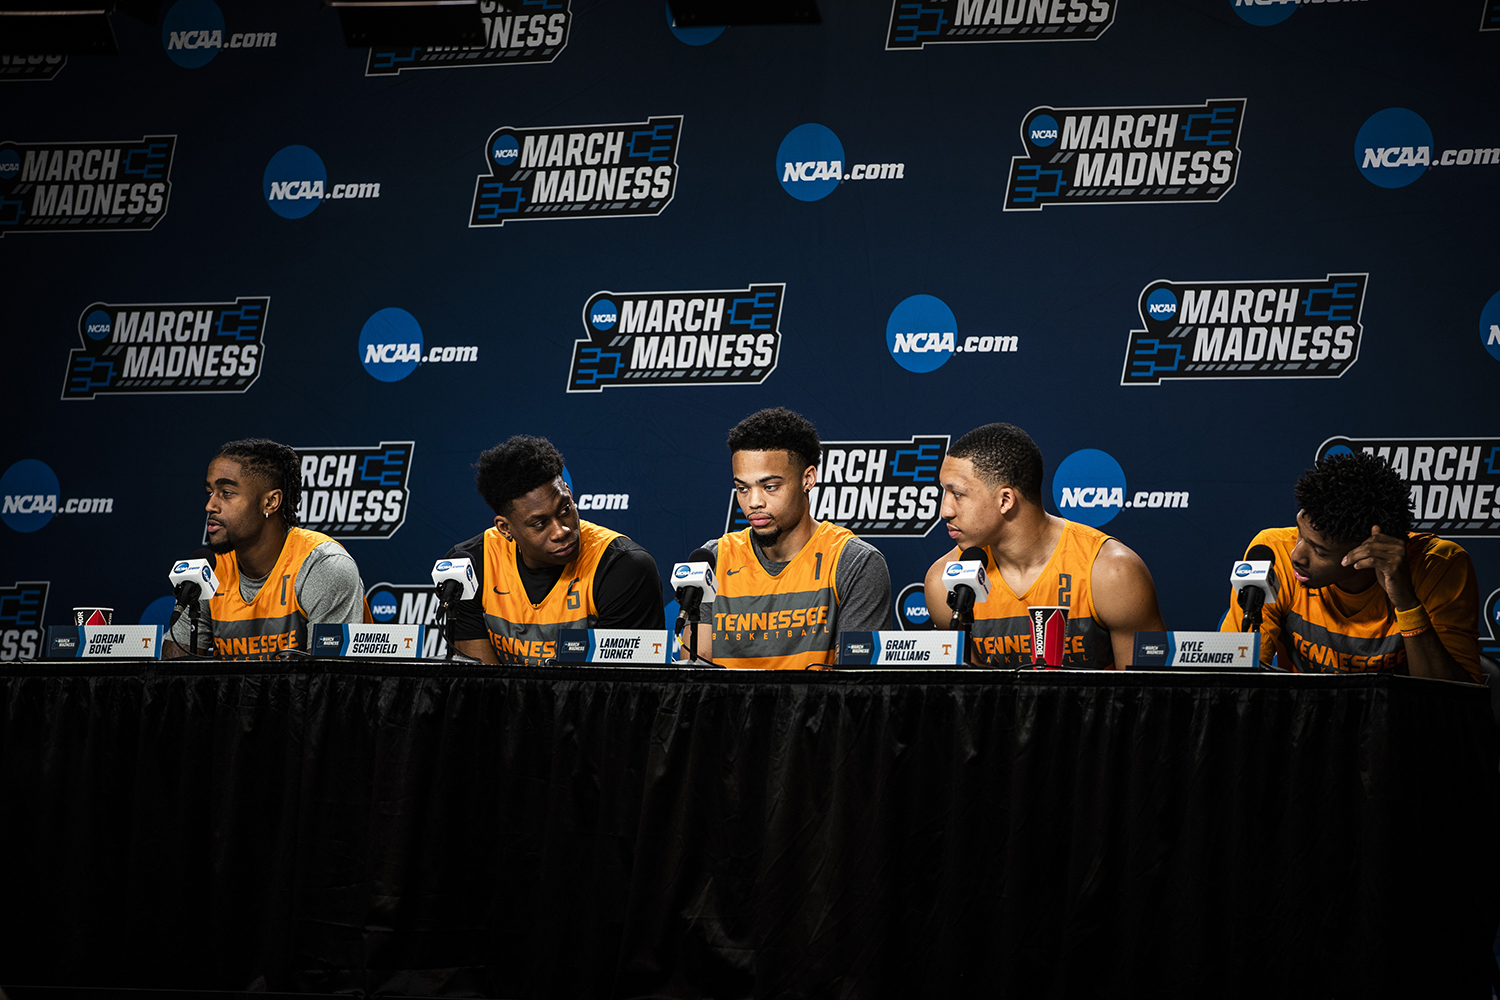 Tennessee players answer questions during the NCAA Tennessee press conference at Nationwide Arena on Saturday, March 23, 2019. The Hawkeyes will play the Volunteers tomorrow in the second round of the tournament.